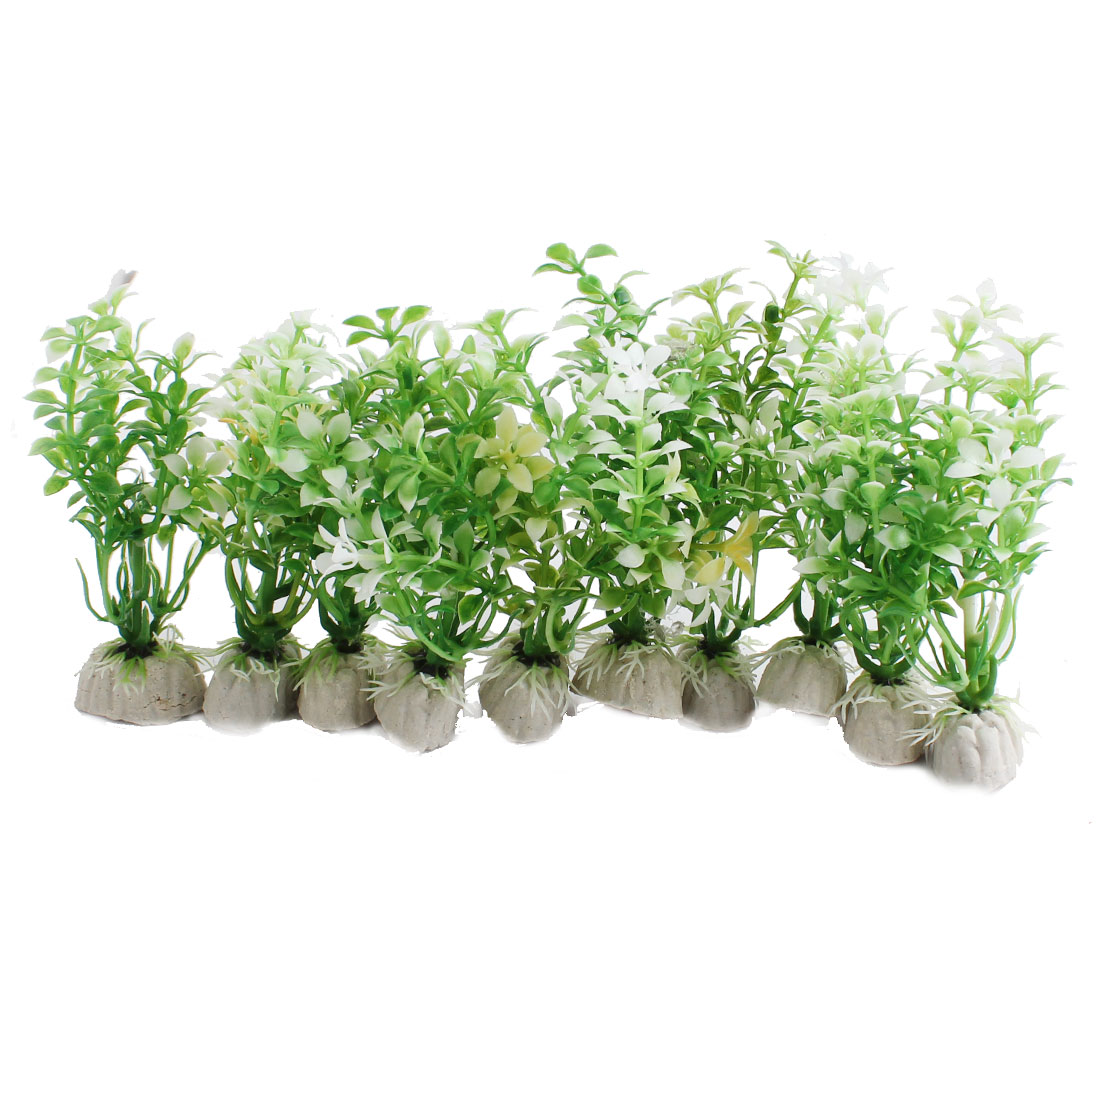 "Aquarium Fish Tank Decor Simulation Underwater Plant Green White 4.7"" Height 10 Pcs"